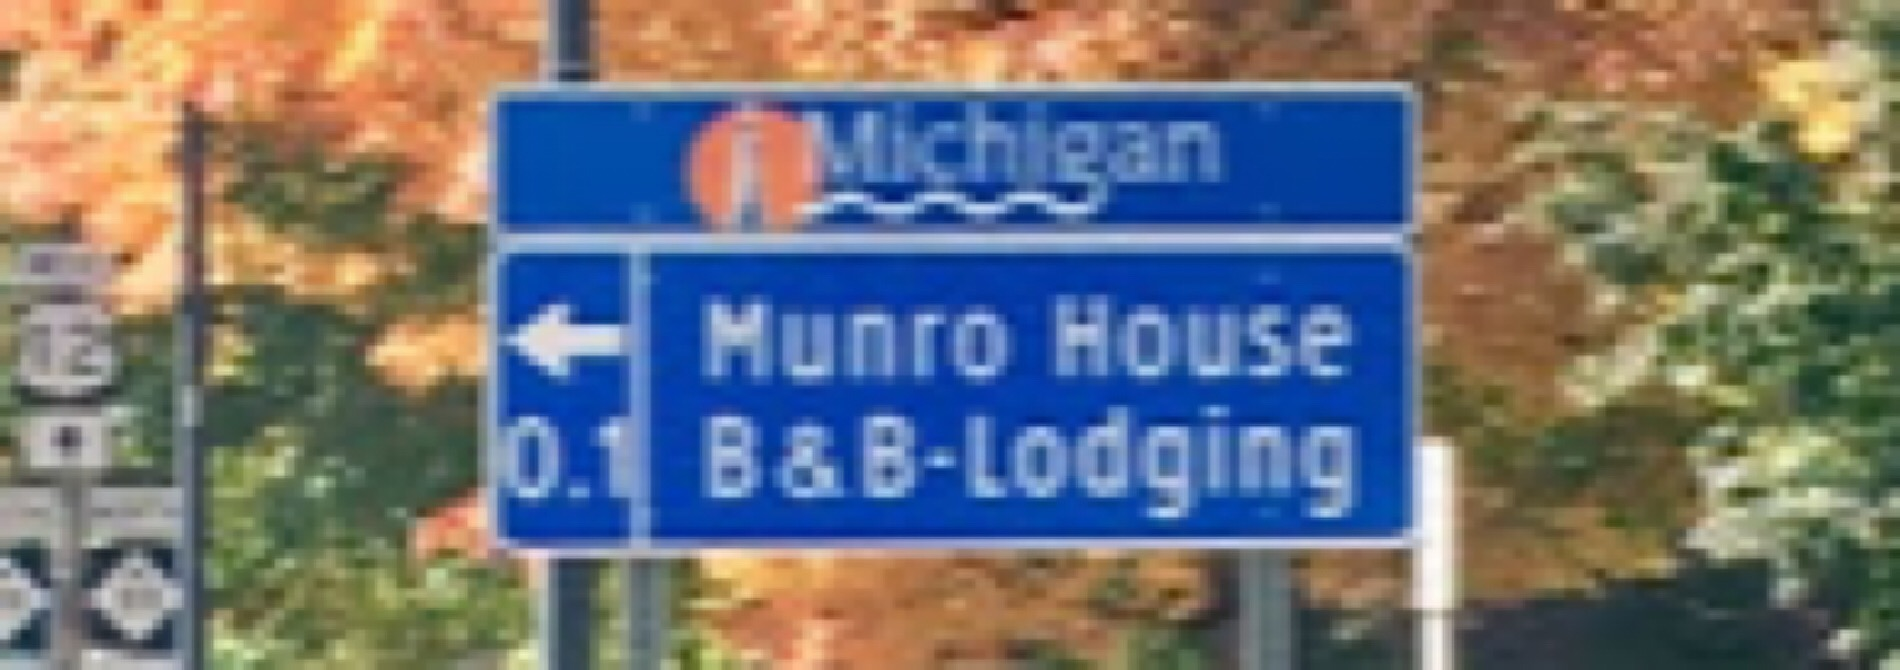 blue highway sign with fall colors in background